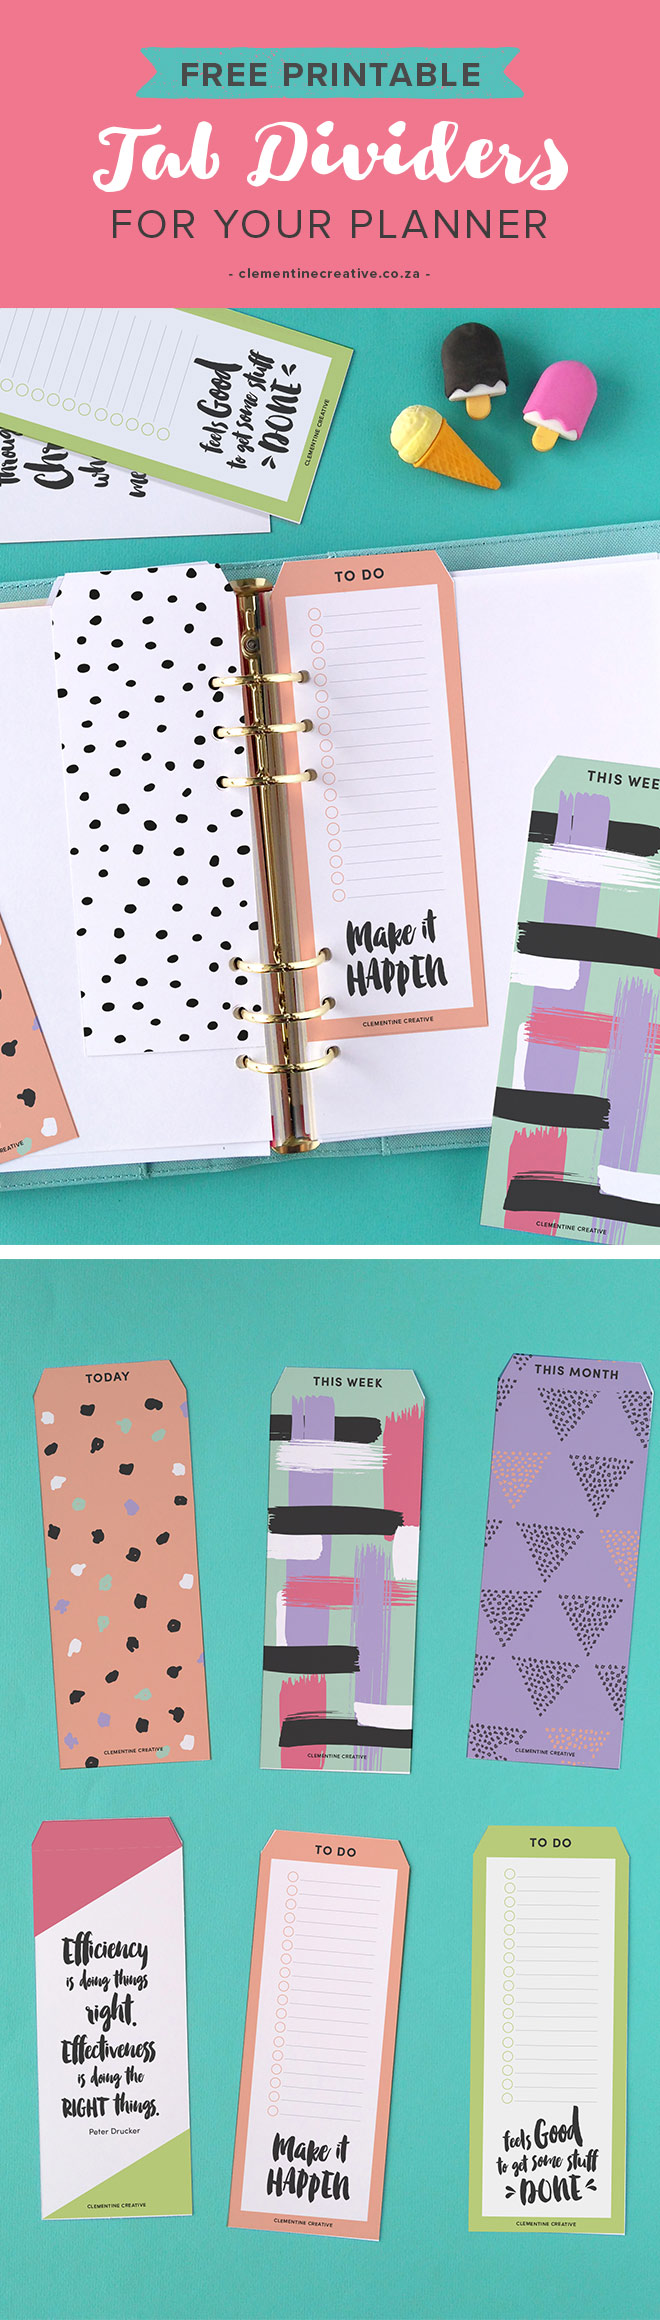 photo relating to Printable Divider Tabs identified as Cost-free Printable Ultimate Tab Dividers for Planners, Diaries and